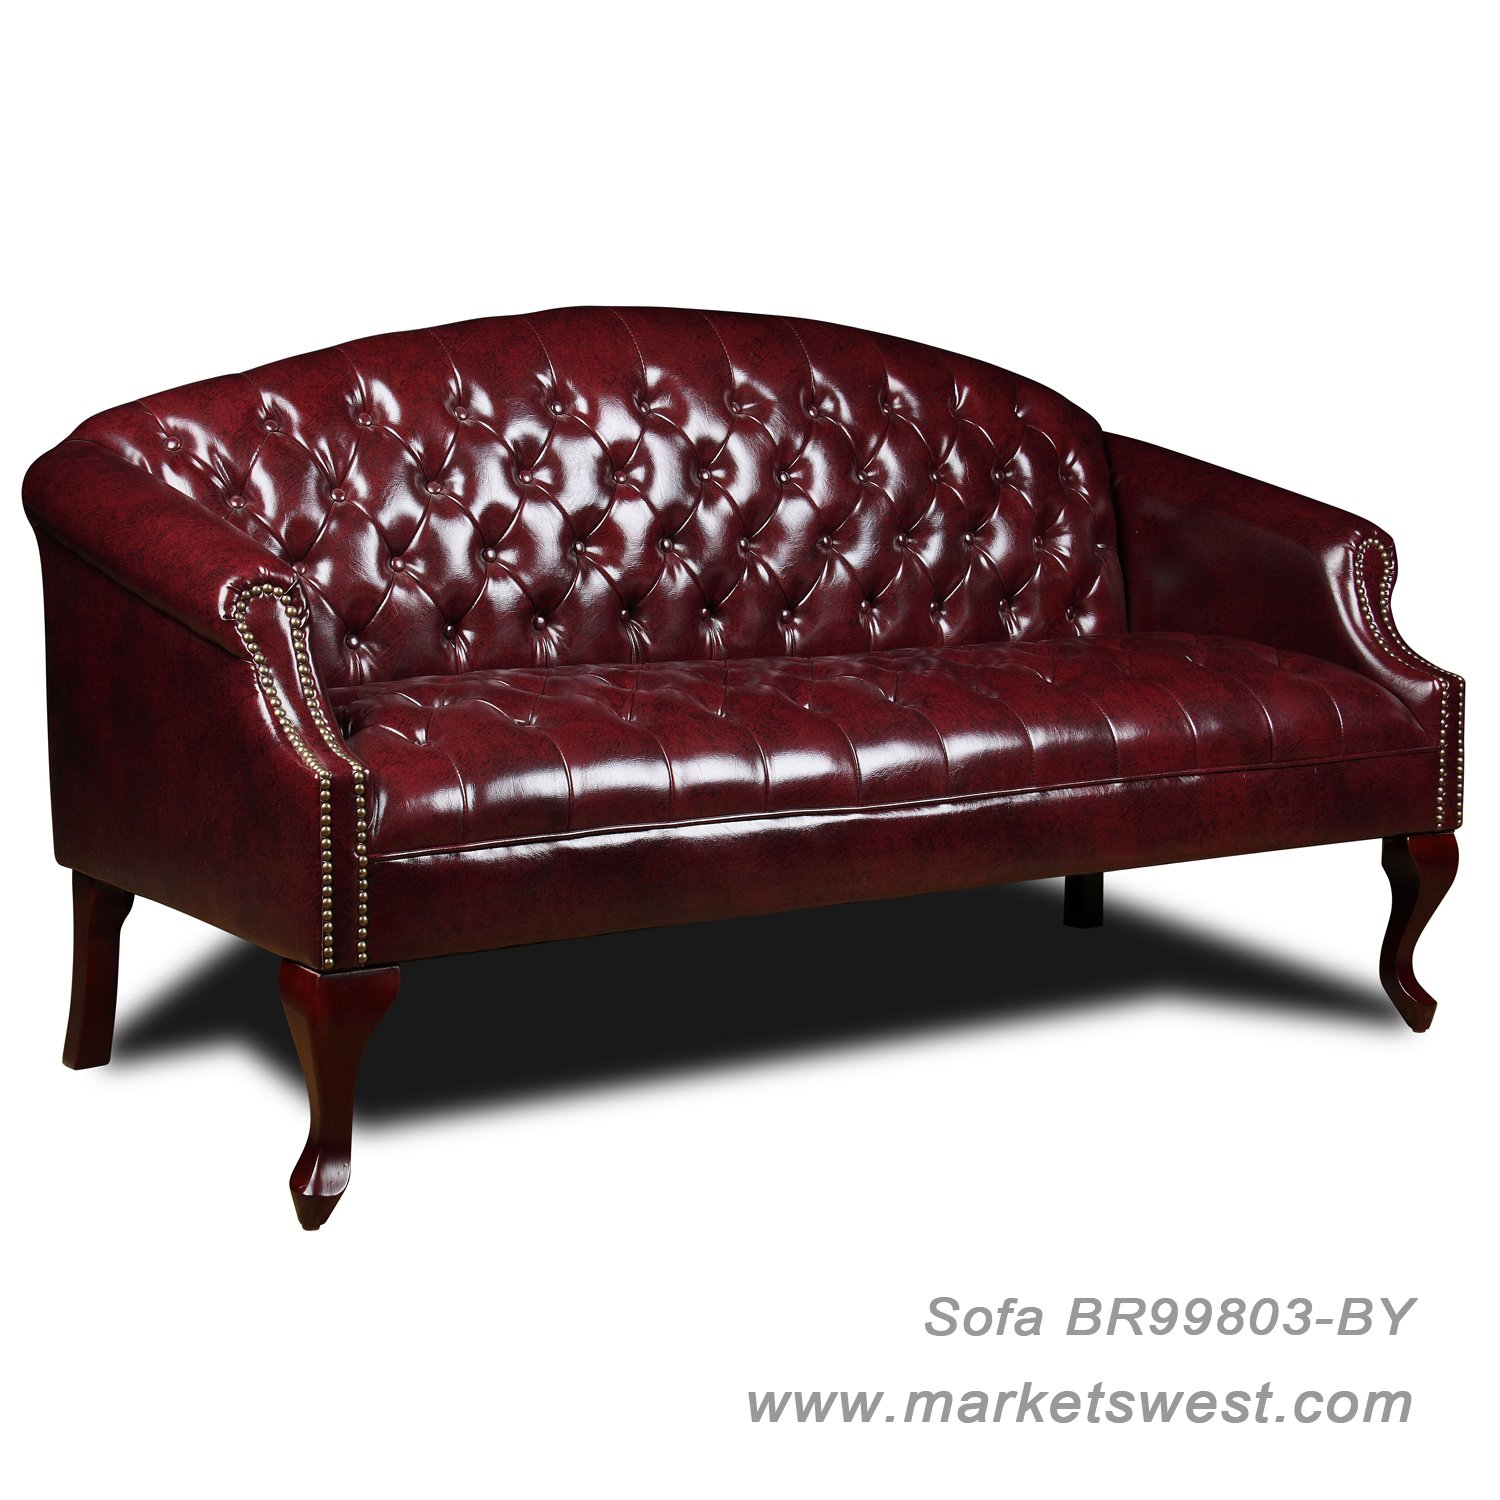 Boss traditional button tufted style sofa for Traditional tufted leather sofa